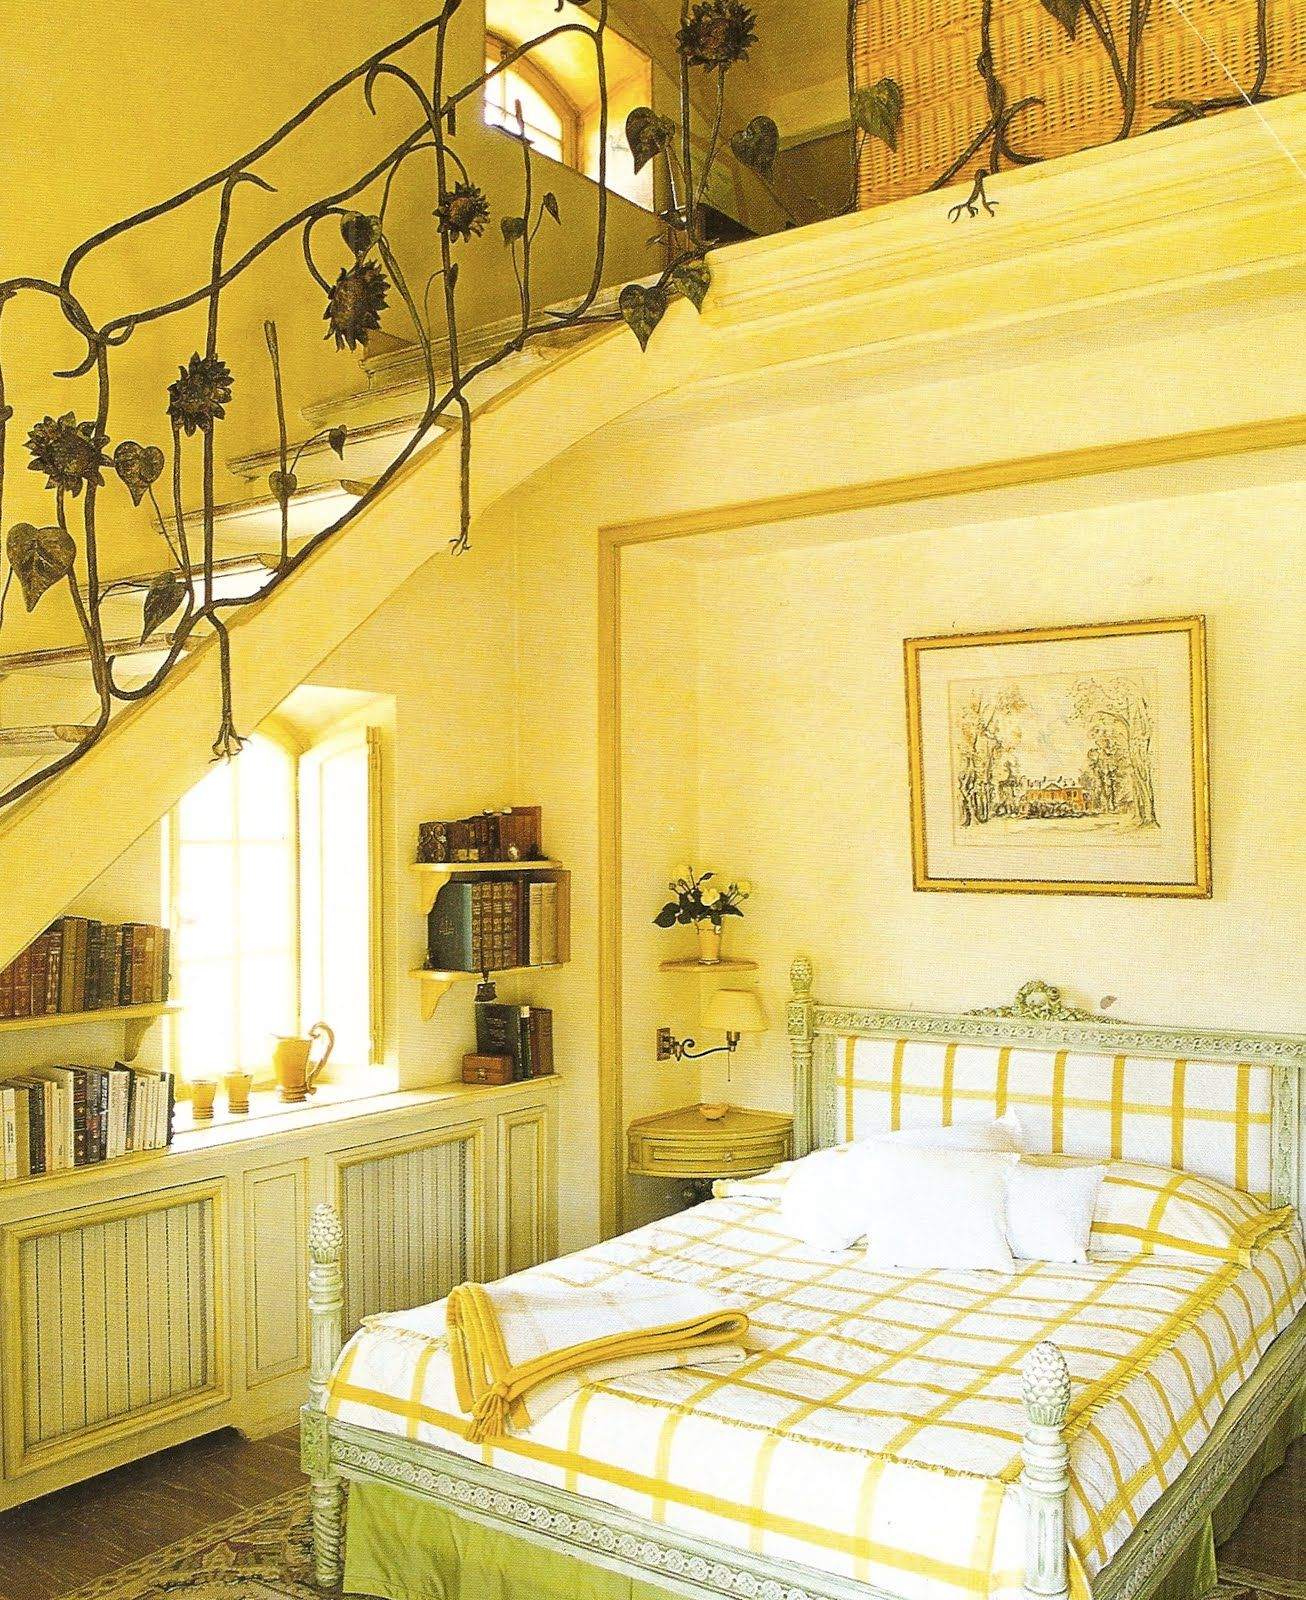 Décor de Provence: French Country Details | Fantasy Home(s ...